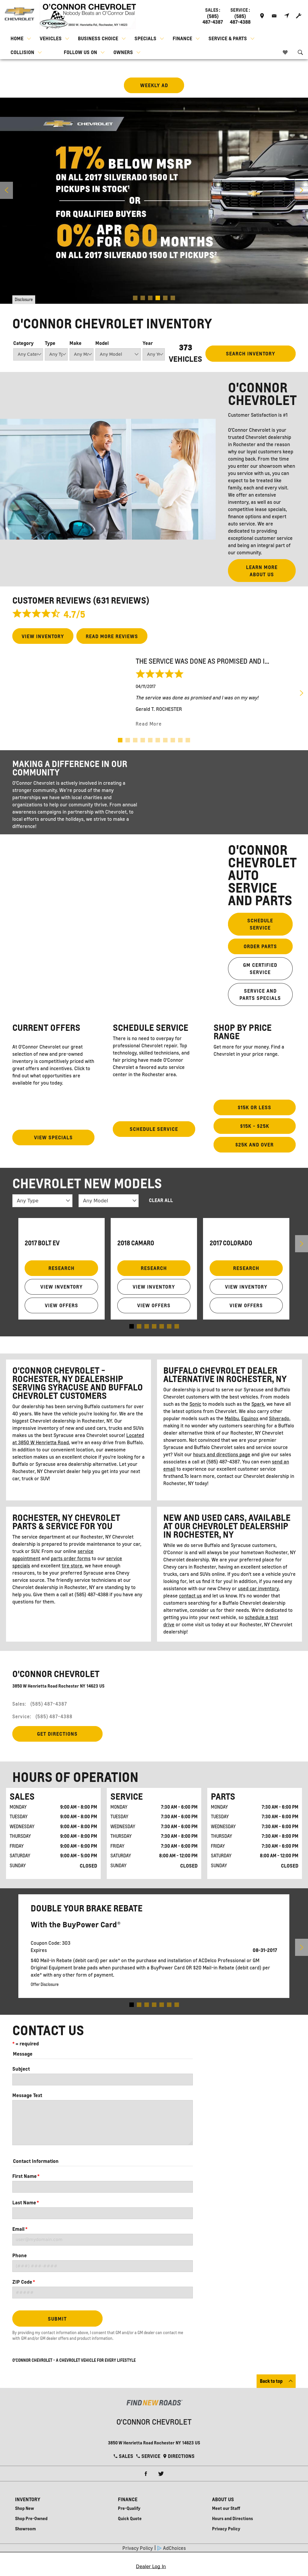 O Connor Chevrolet petitors Revenue and Employees Owler